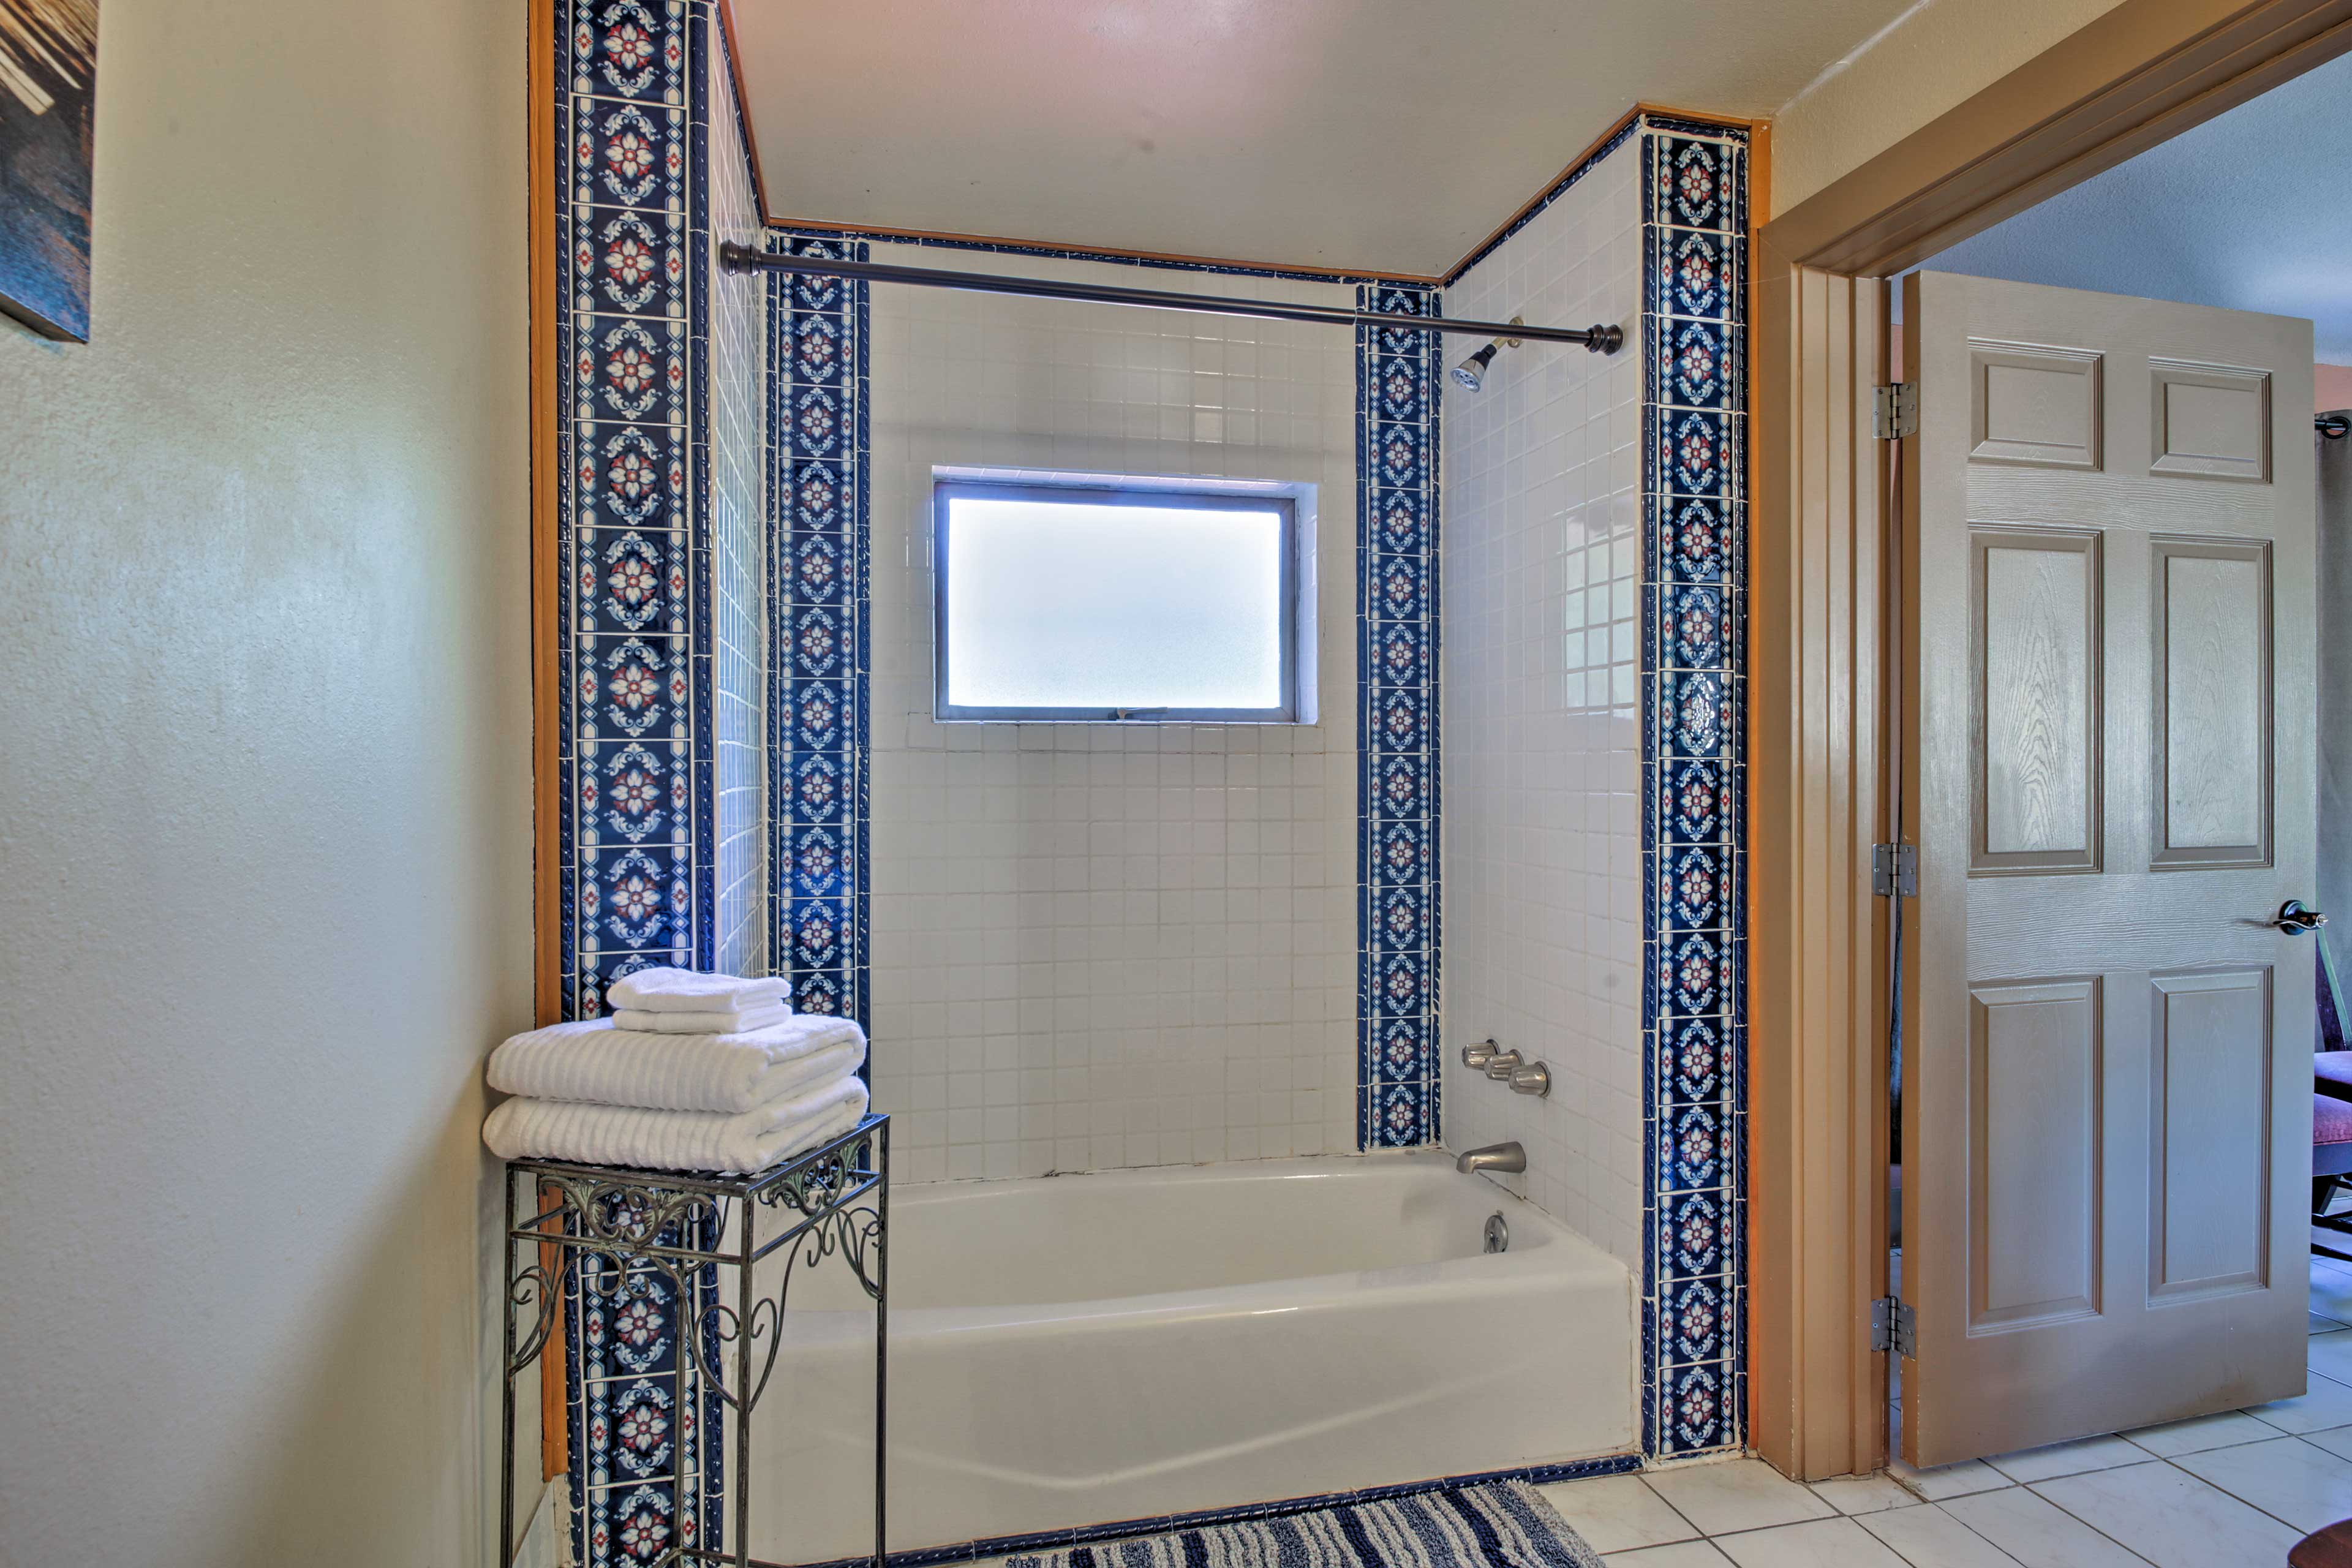 There's even a shower/tub combo with intricately patterned tile work.